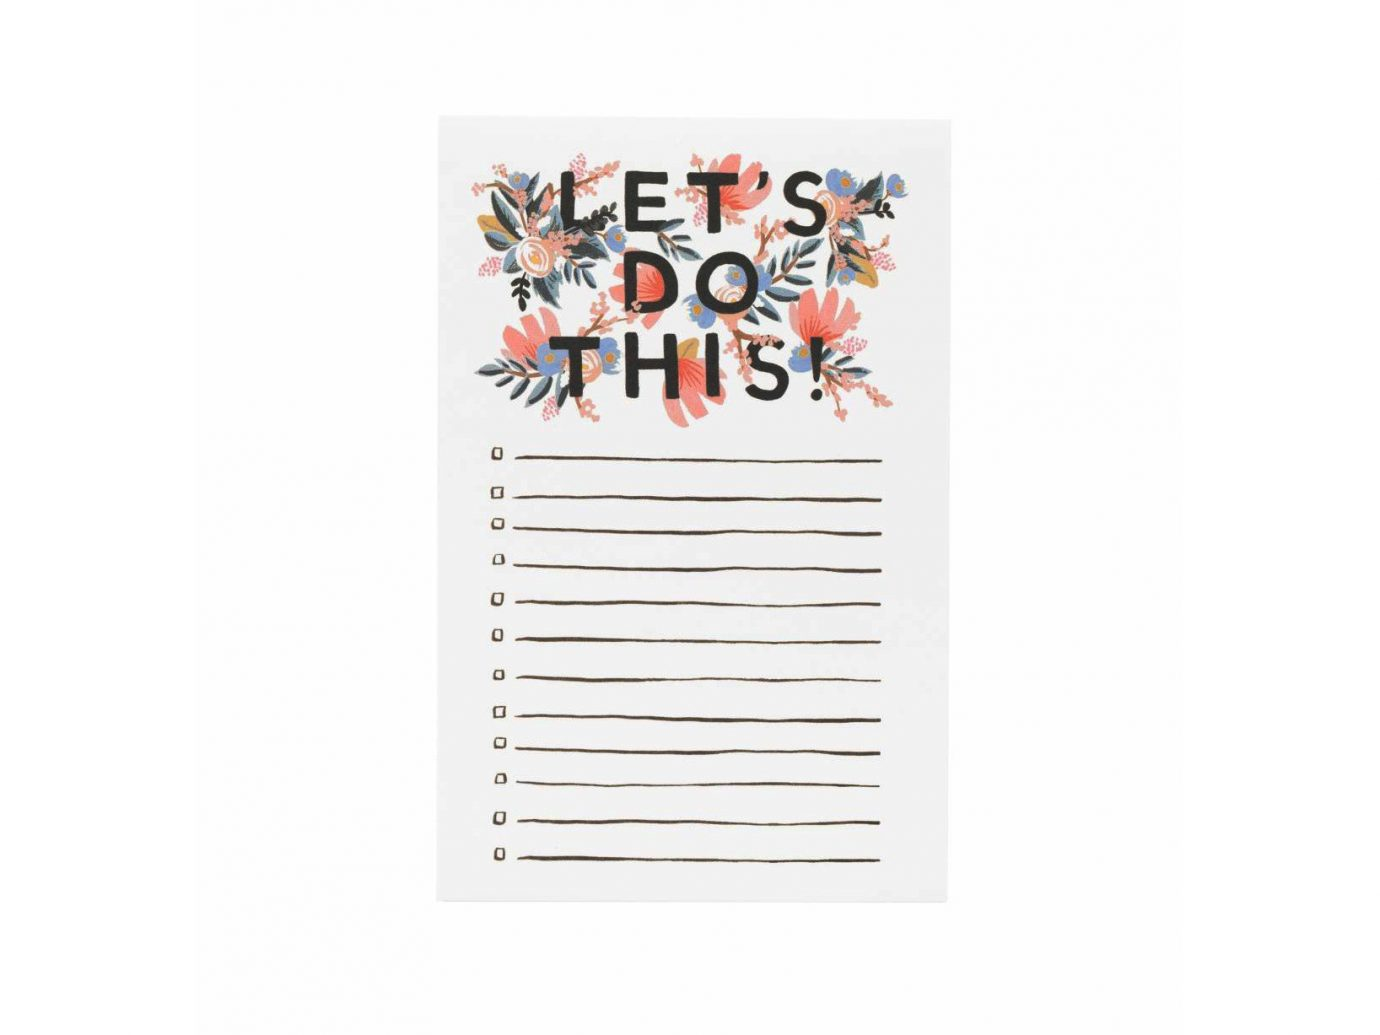 Buy TRifle Paper Co. Notepad on Amazon